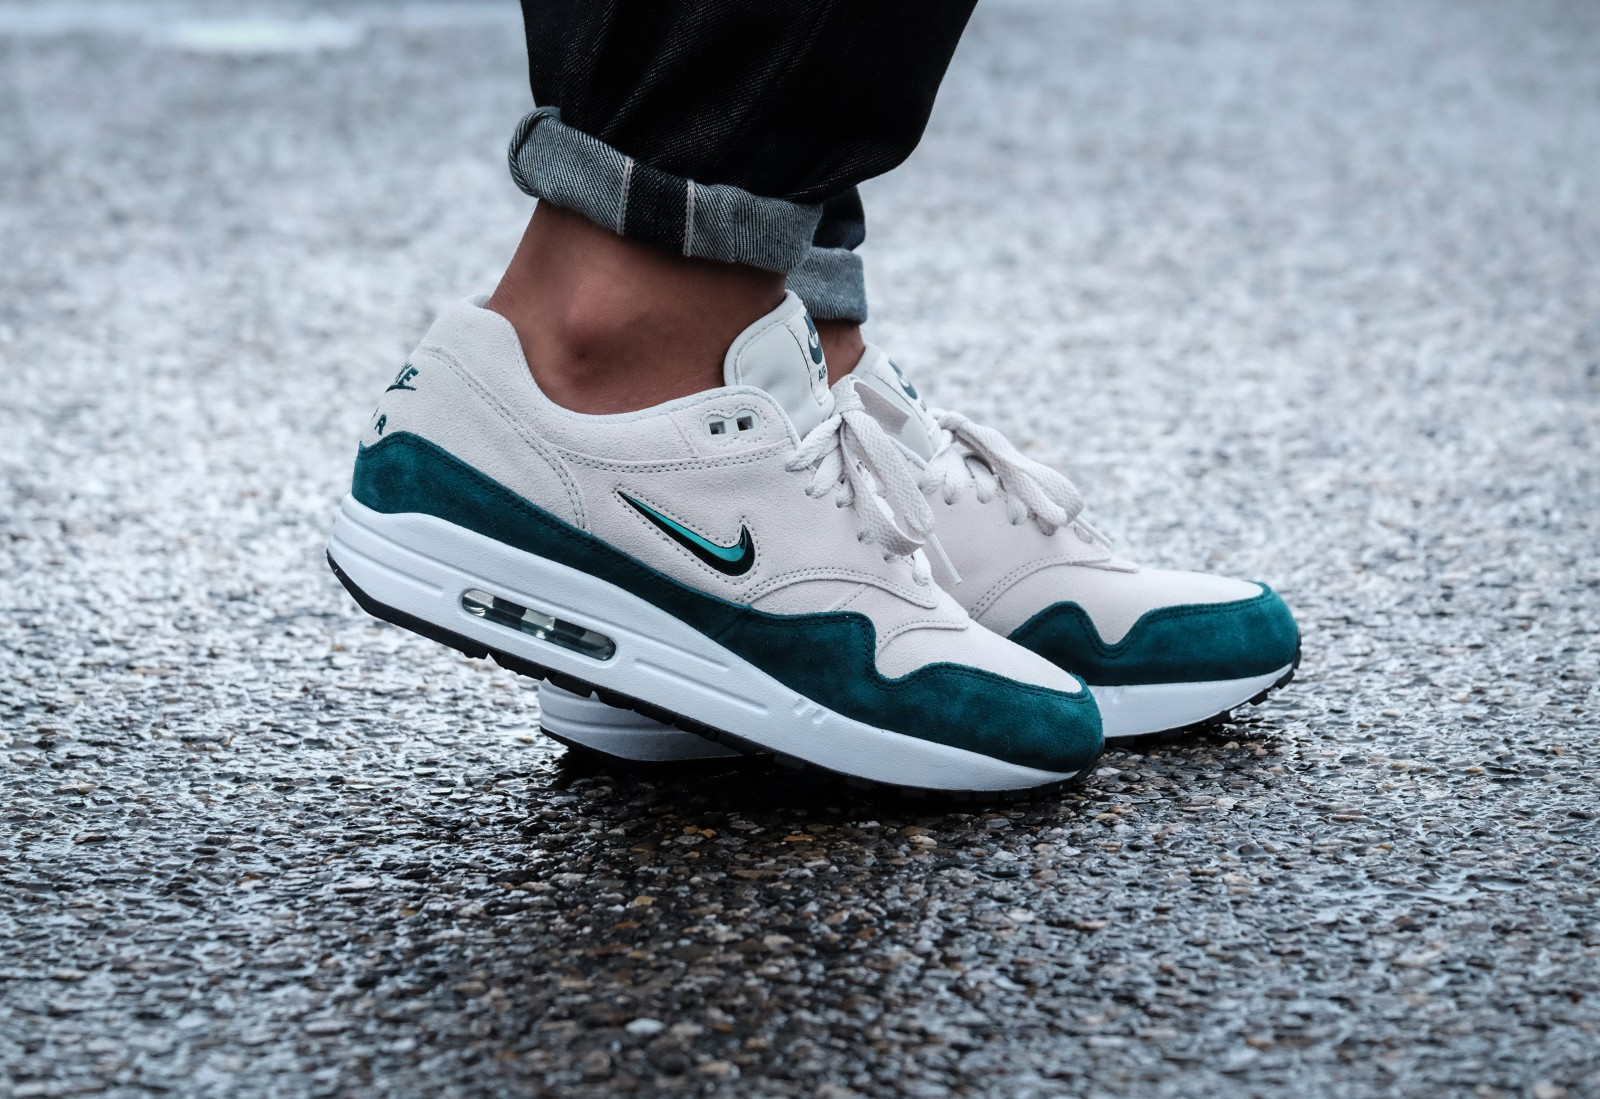 nike air max 1 premium sc light bone dark atomic teal white black 918354 003. Black Bedroom Furniture Sets. Home Design Ideas